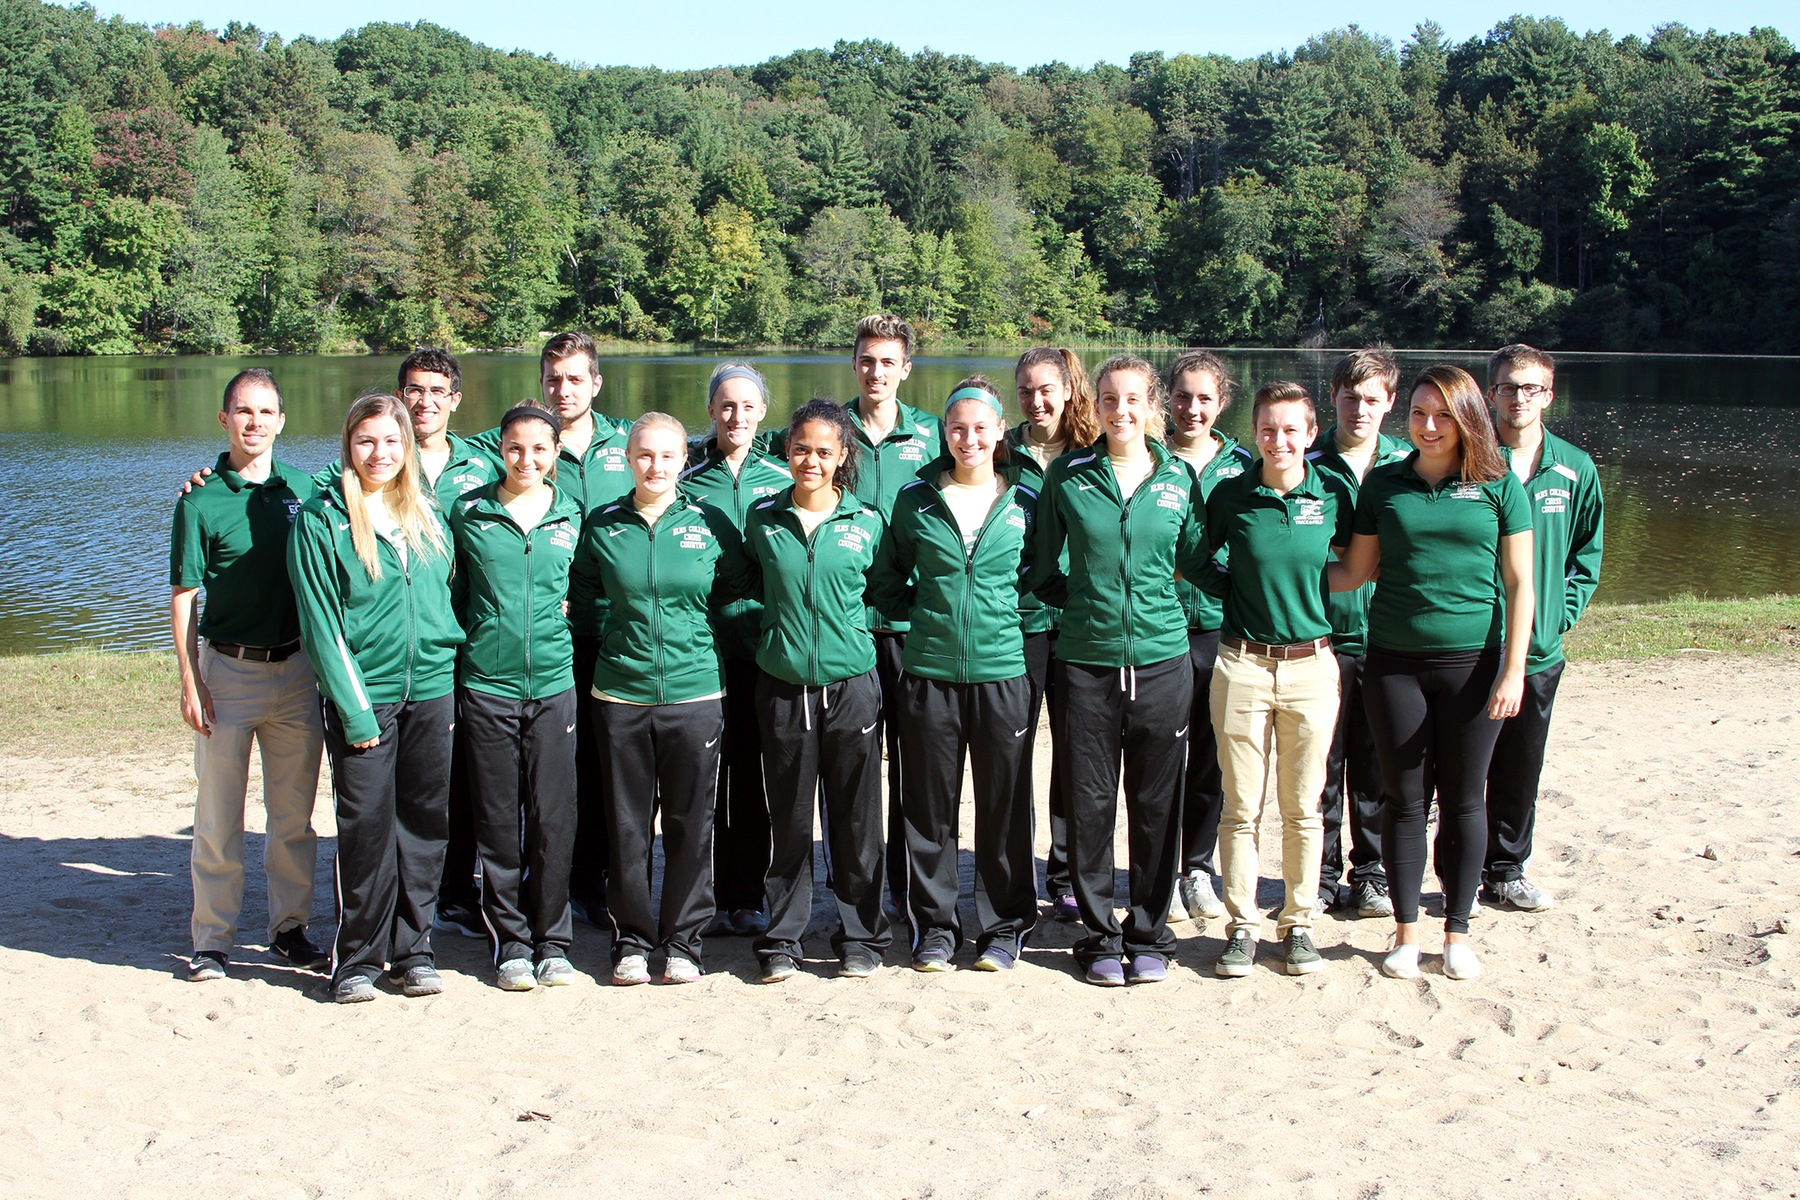 Elms Cross Country Among Division III's Elite In Academic Performance